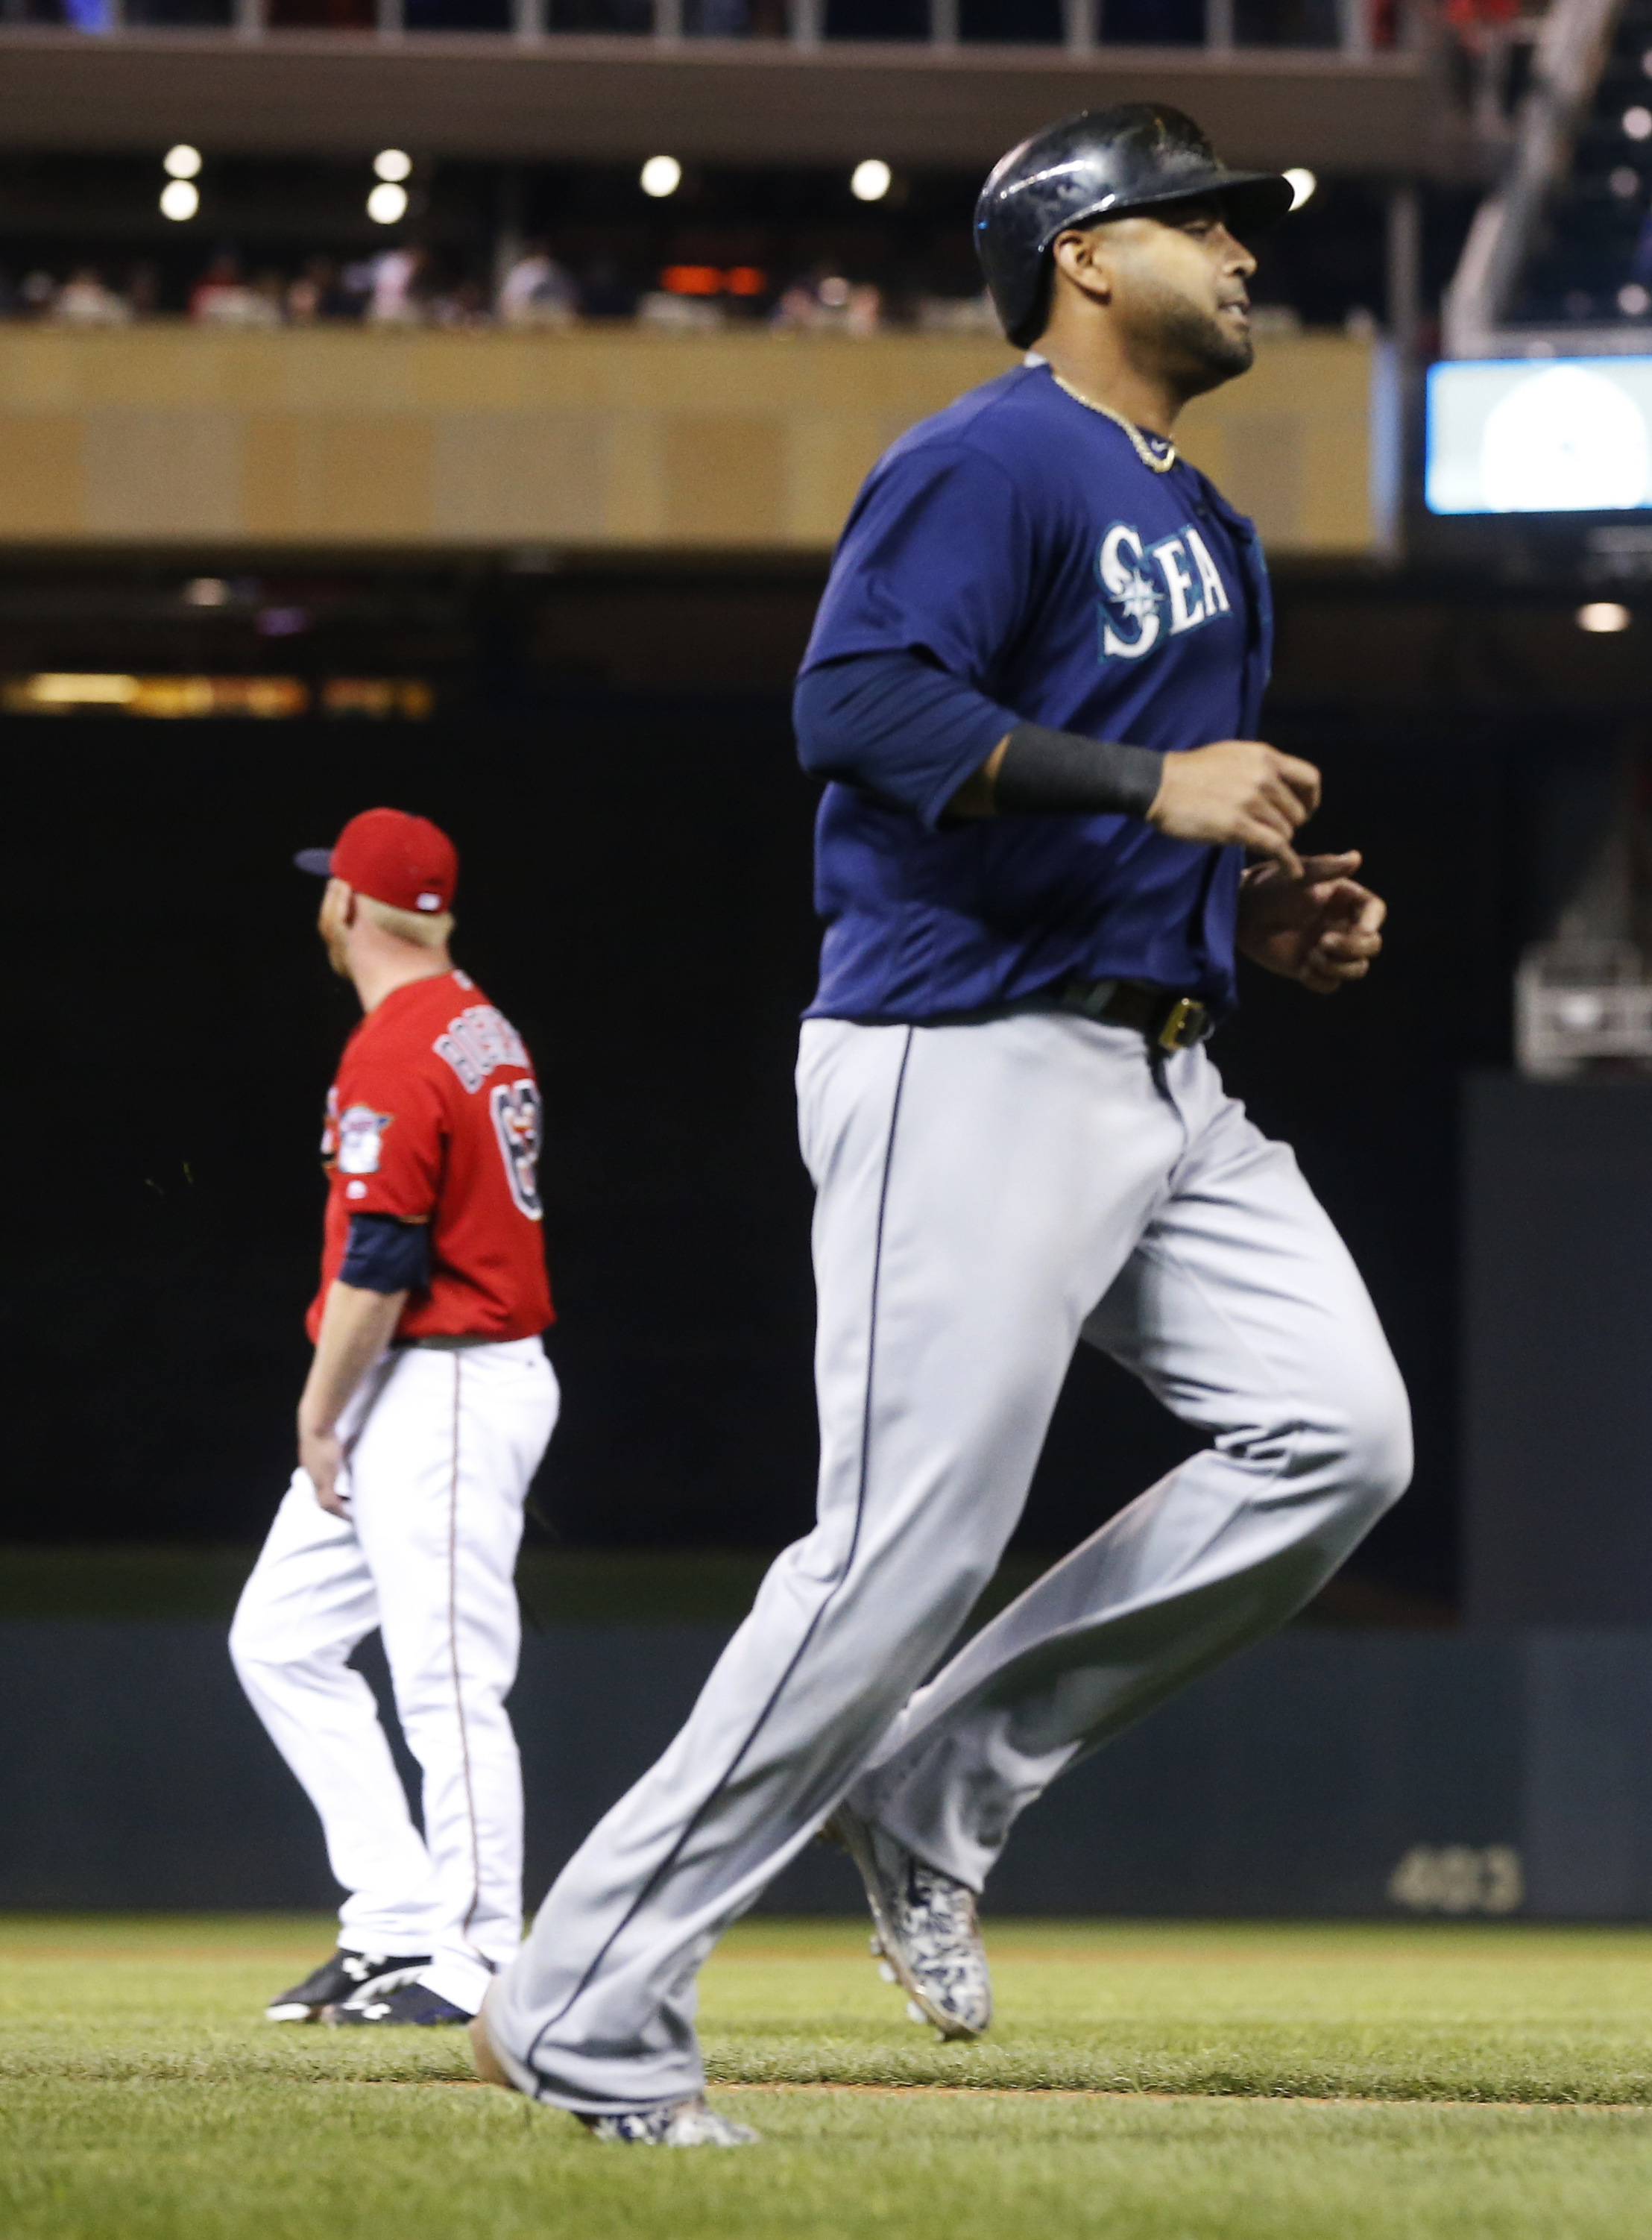 Seattle Mariners' Nelson Cruz jogs home on an RBI double by Kyle Seager off Minnesota Twins pitcher Buddy Boshers, left, during the seventh inning of a baseball game Friday, Sept. 23, 2016, in Minneapolis. (AP Photo/Jim Mone)